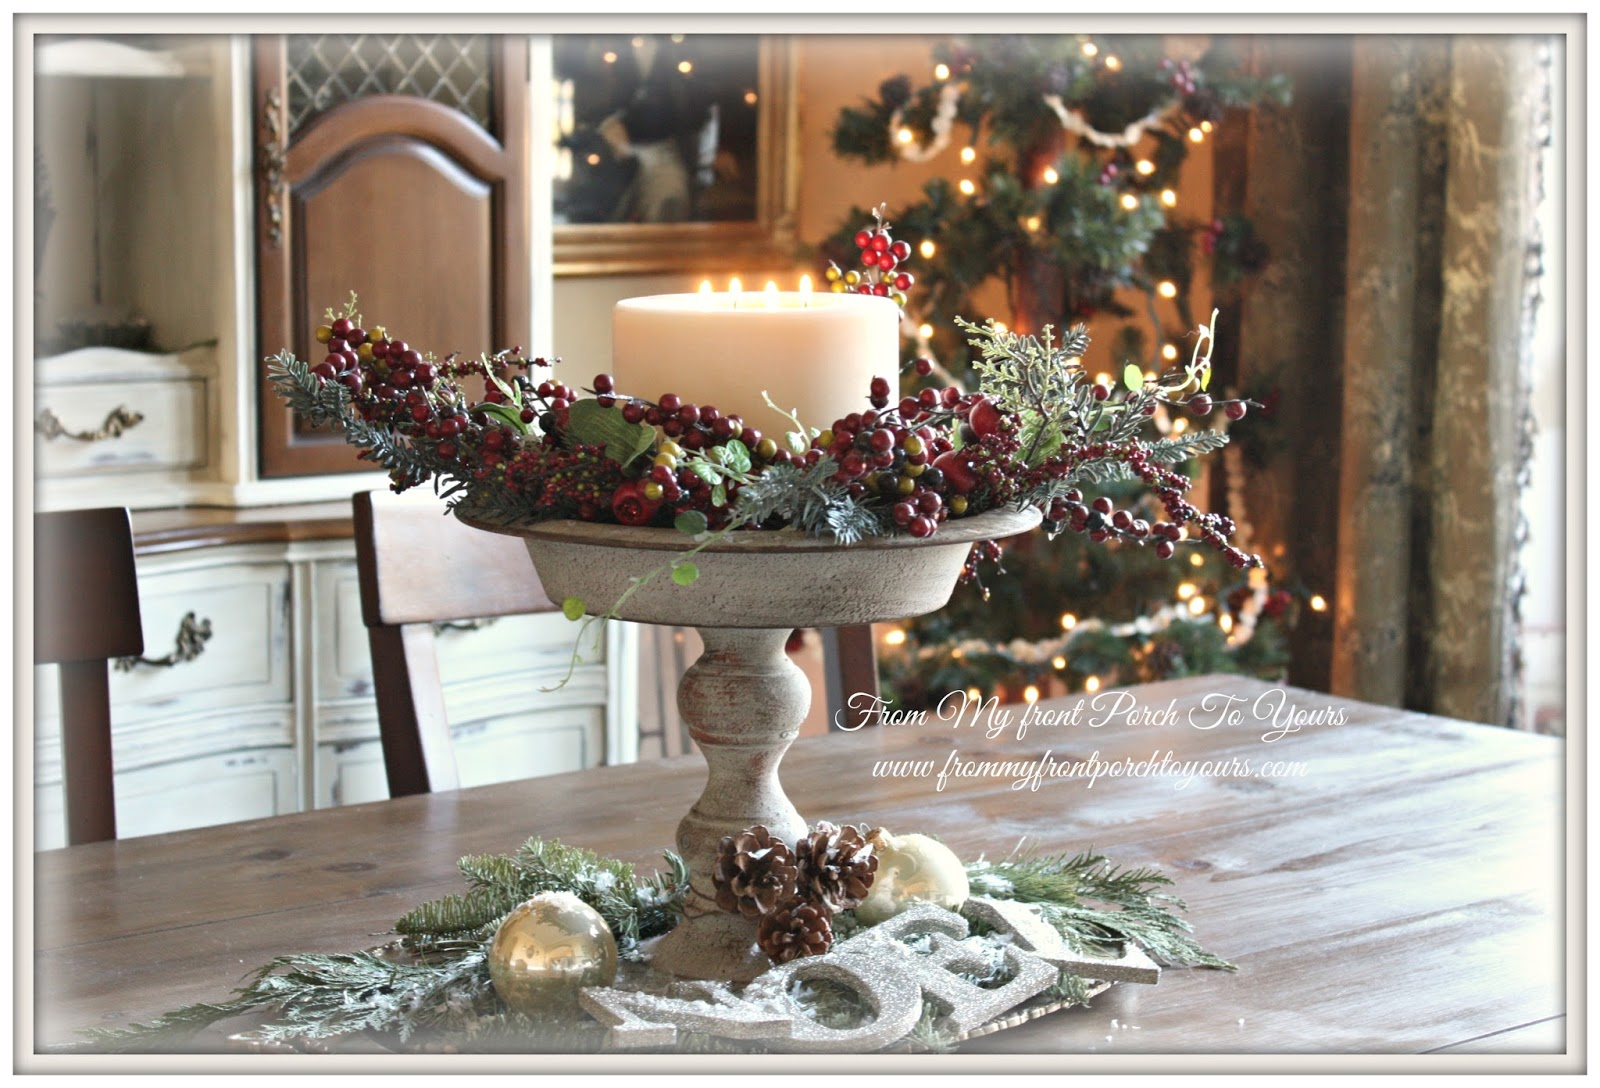 from my front porch to yours french farmhouse christmas dining room 2013. Black Bedroom Furniture Sets. Home Design Ideas